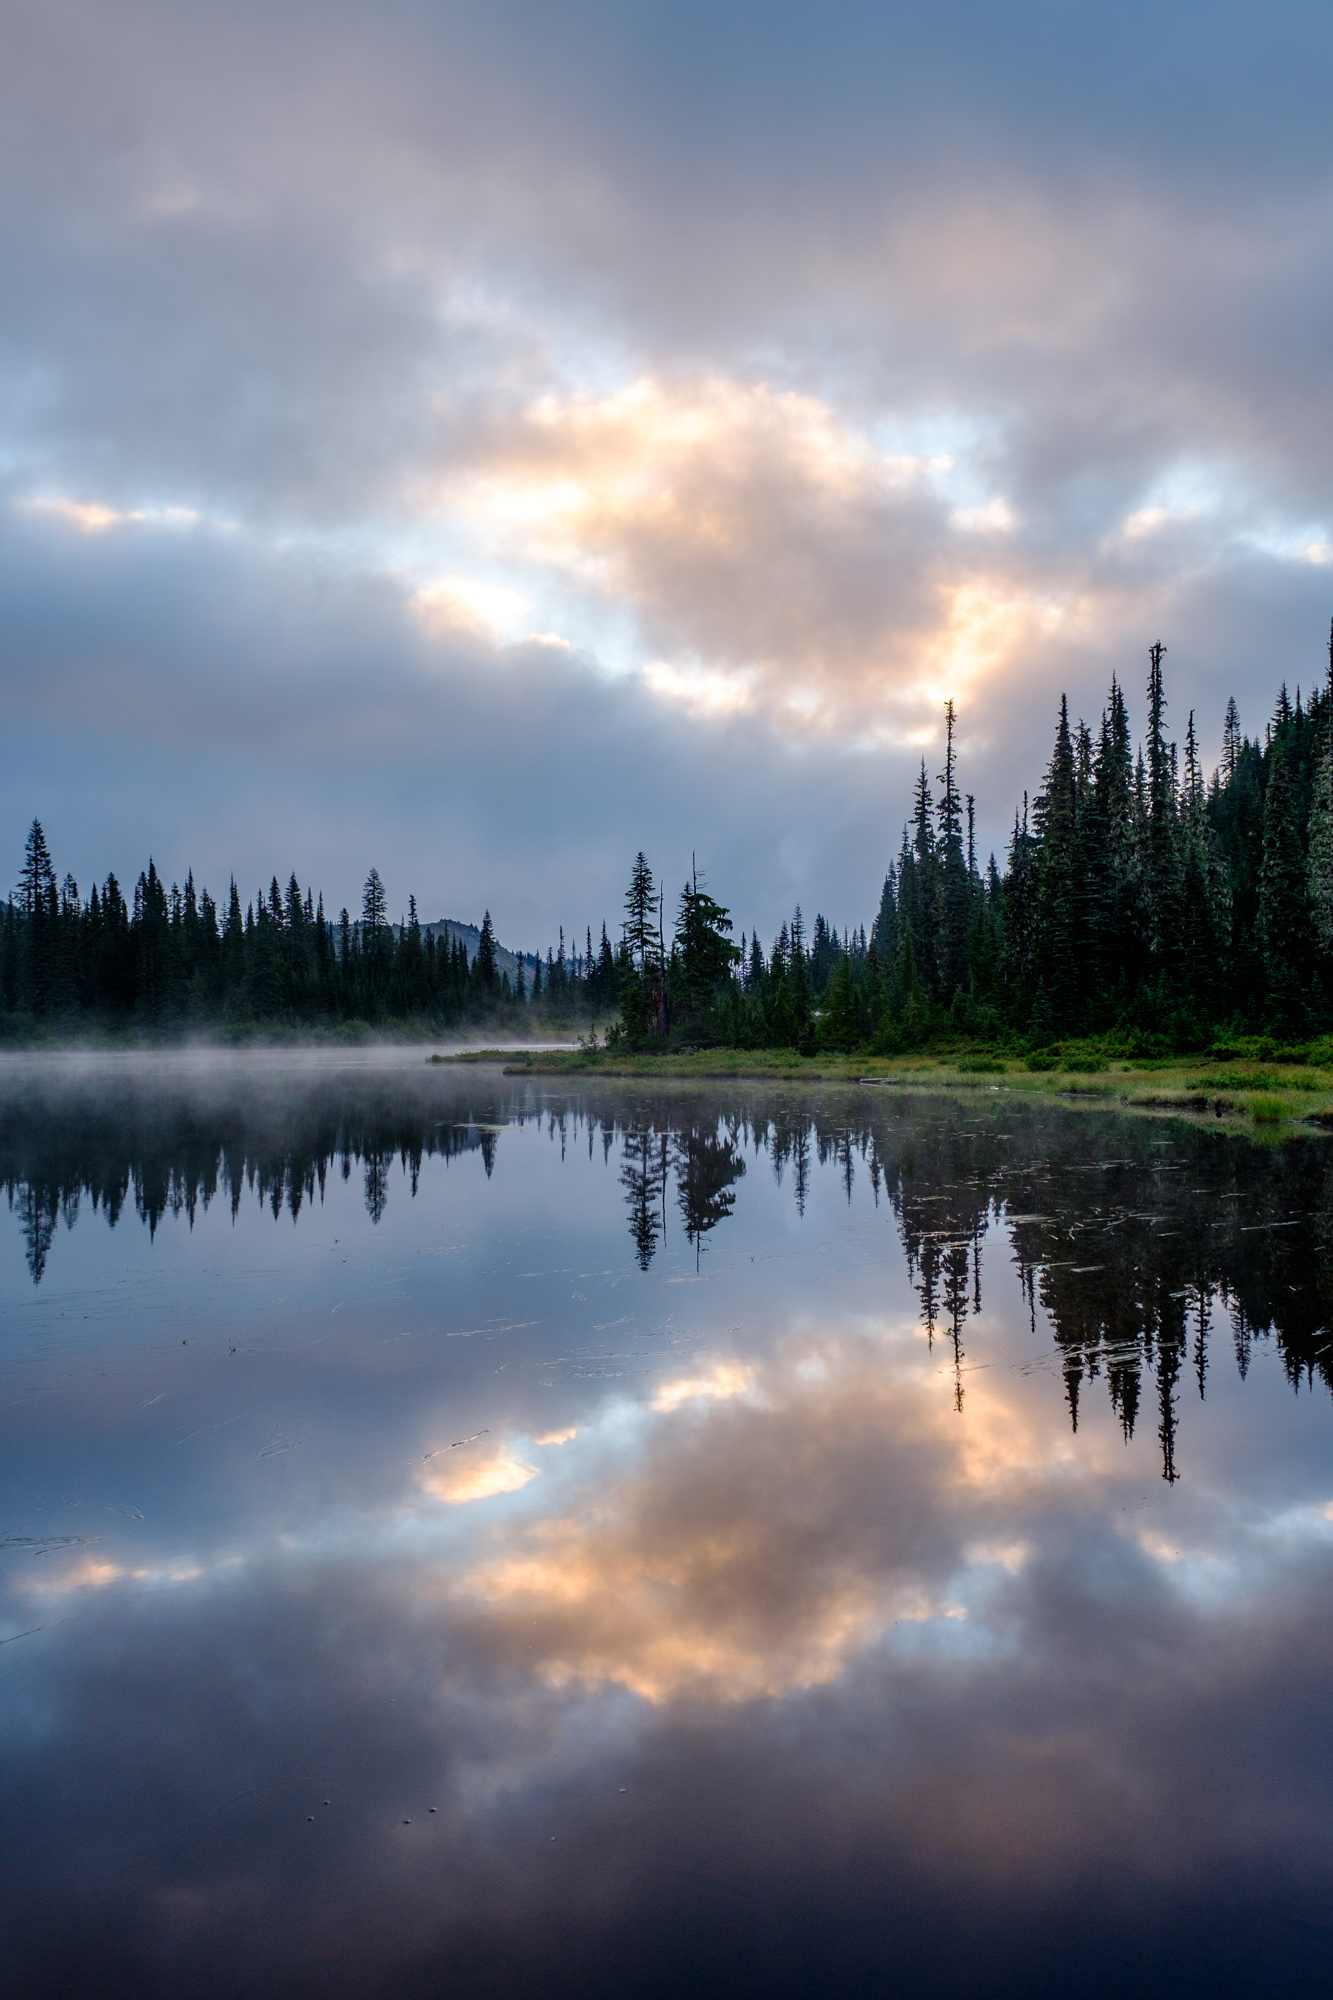 Reflection lakes....hoping Mount Rainier will come out to play!